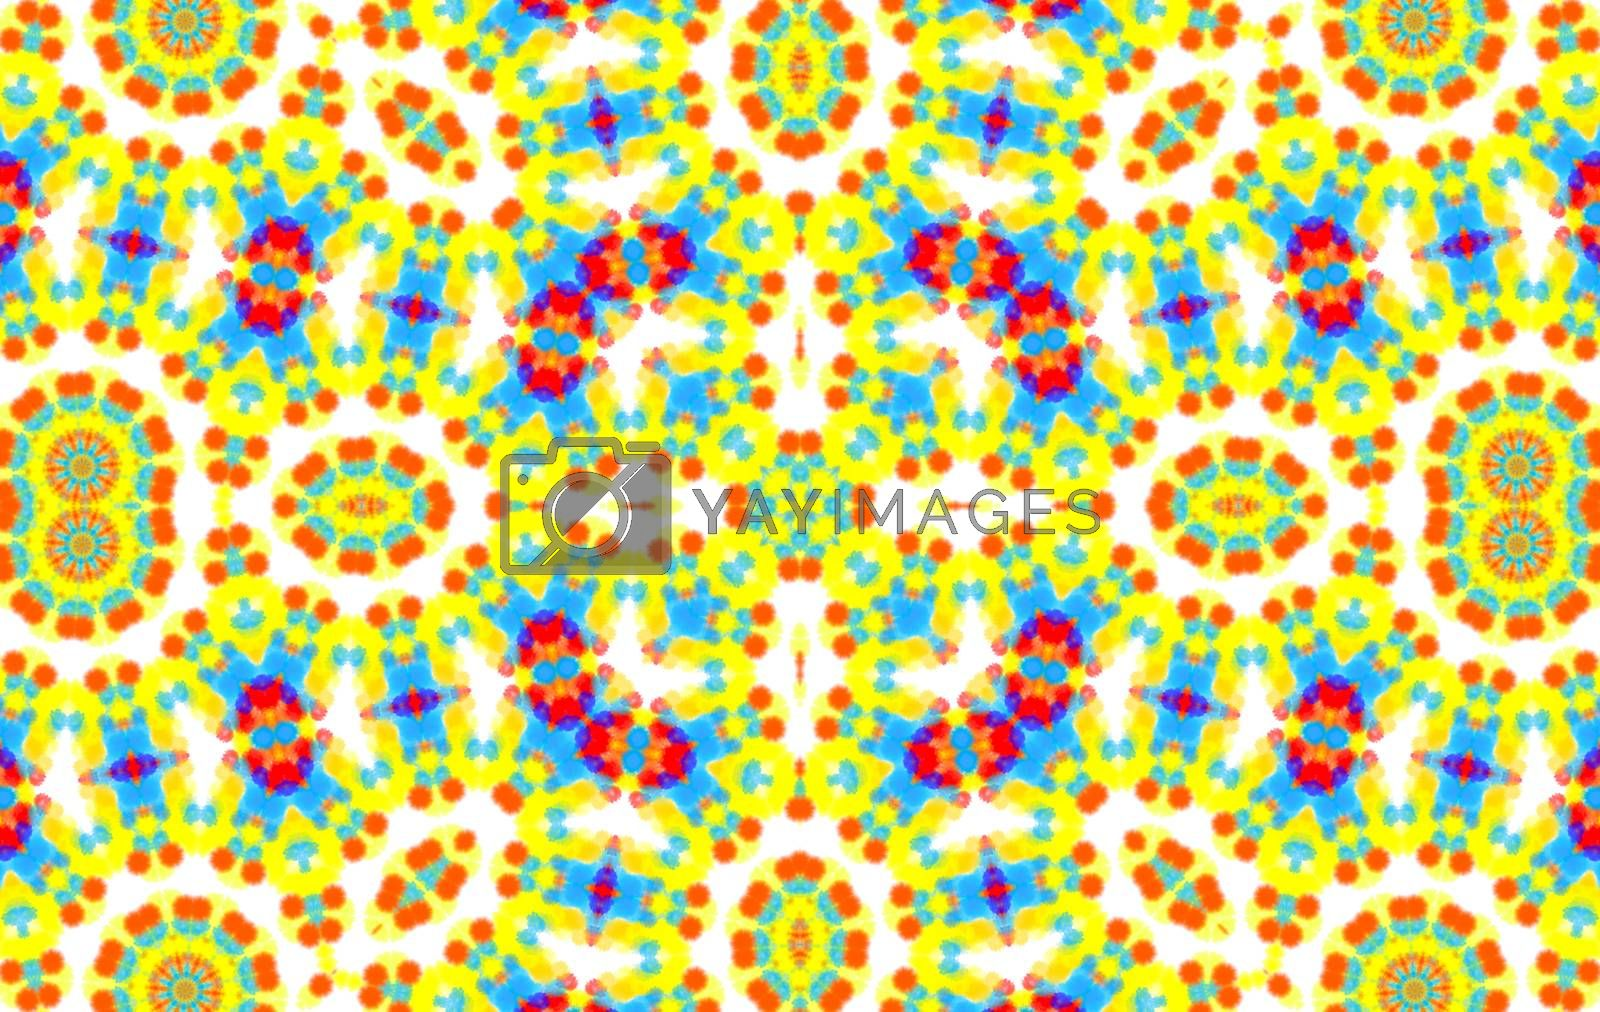 Bright abstract pattern on white background